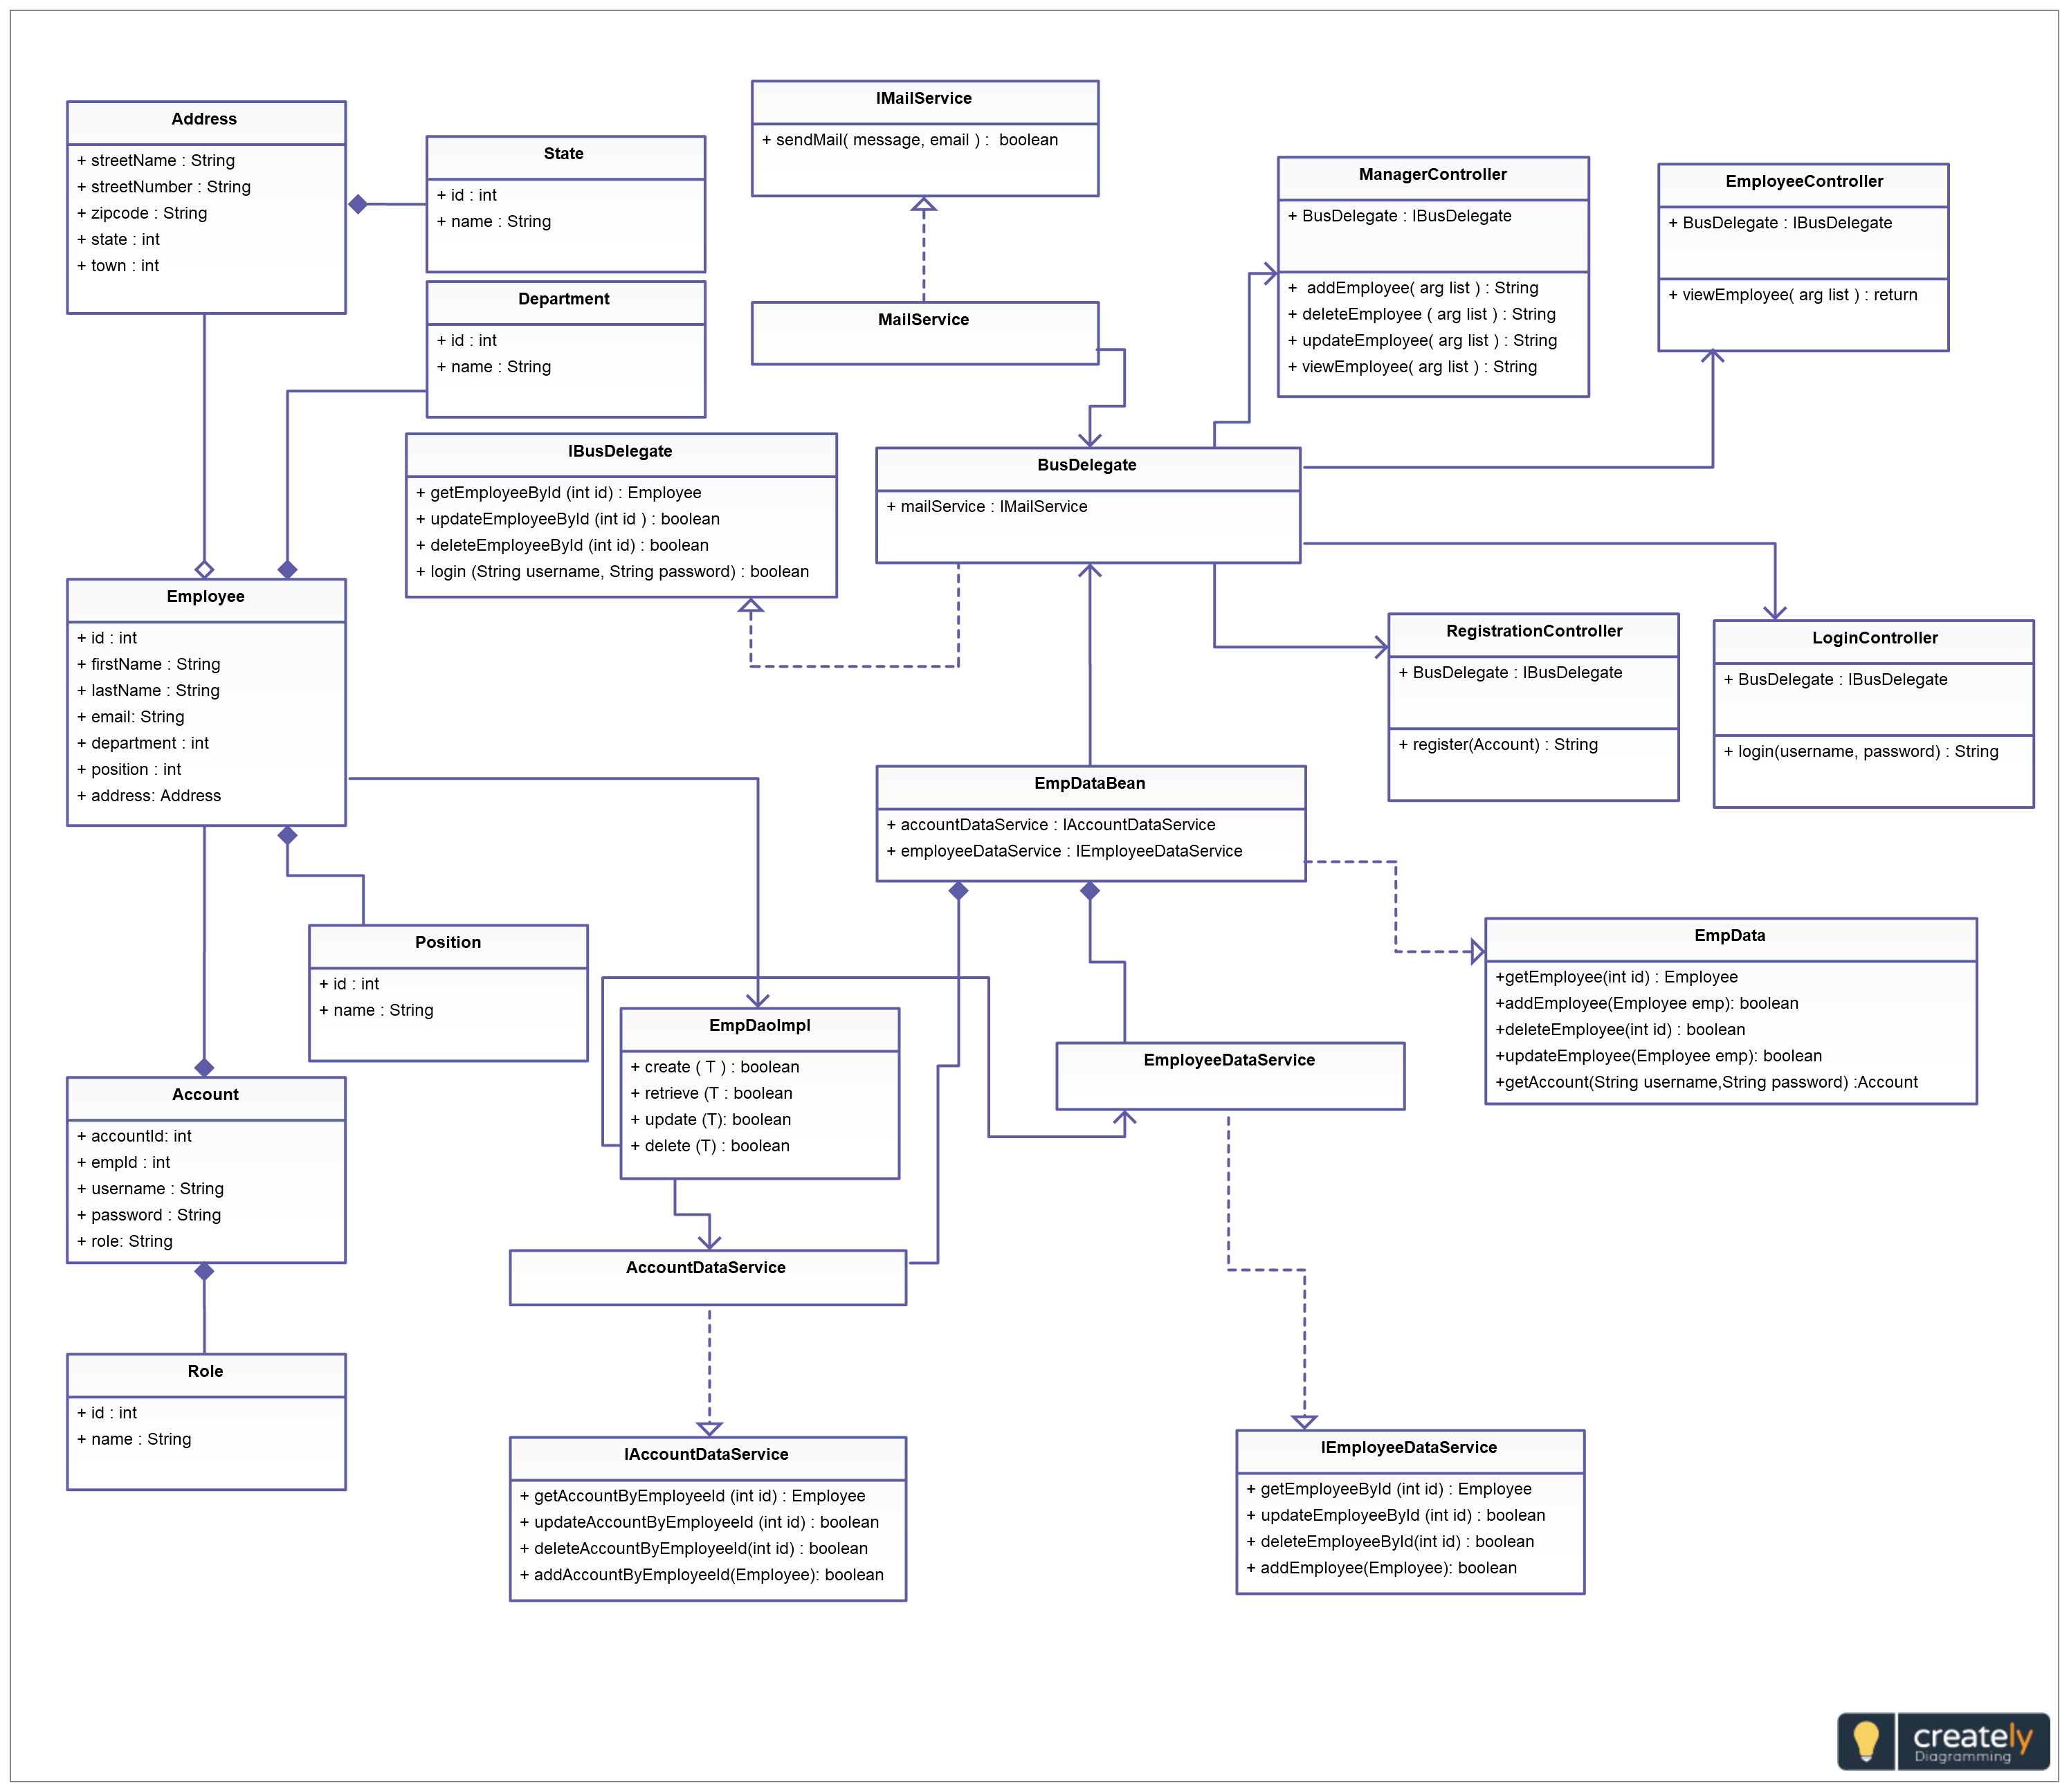 small resolution of click on the example to edit online and download as an image class classdiagram uml umlclass employee management system software apps